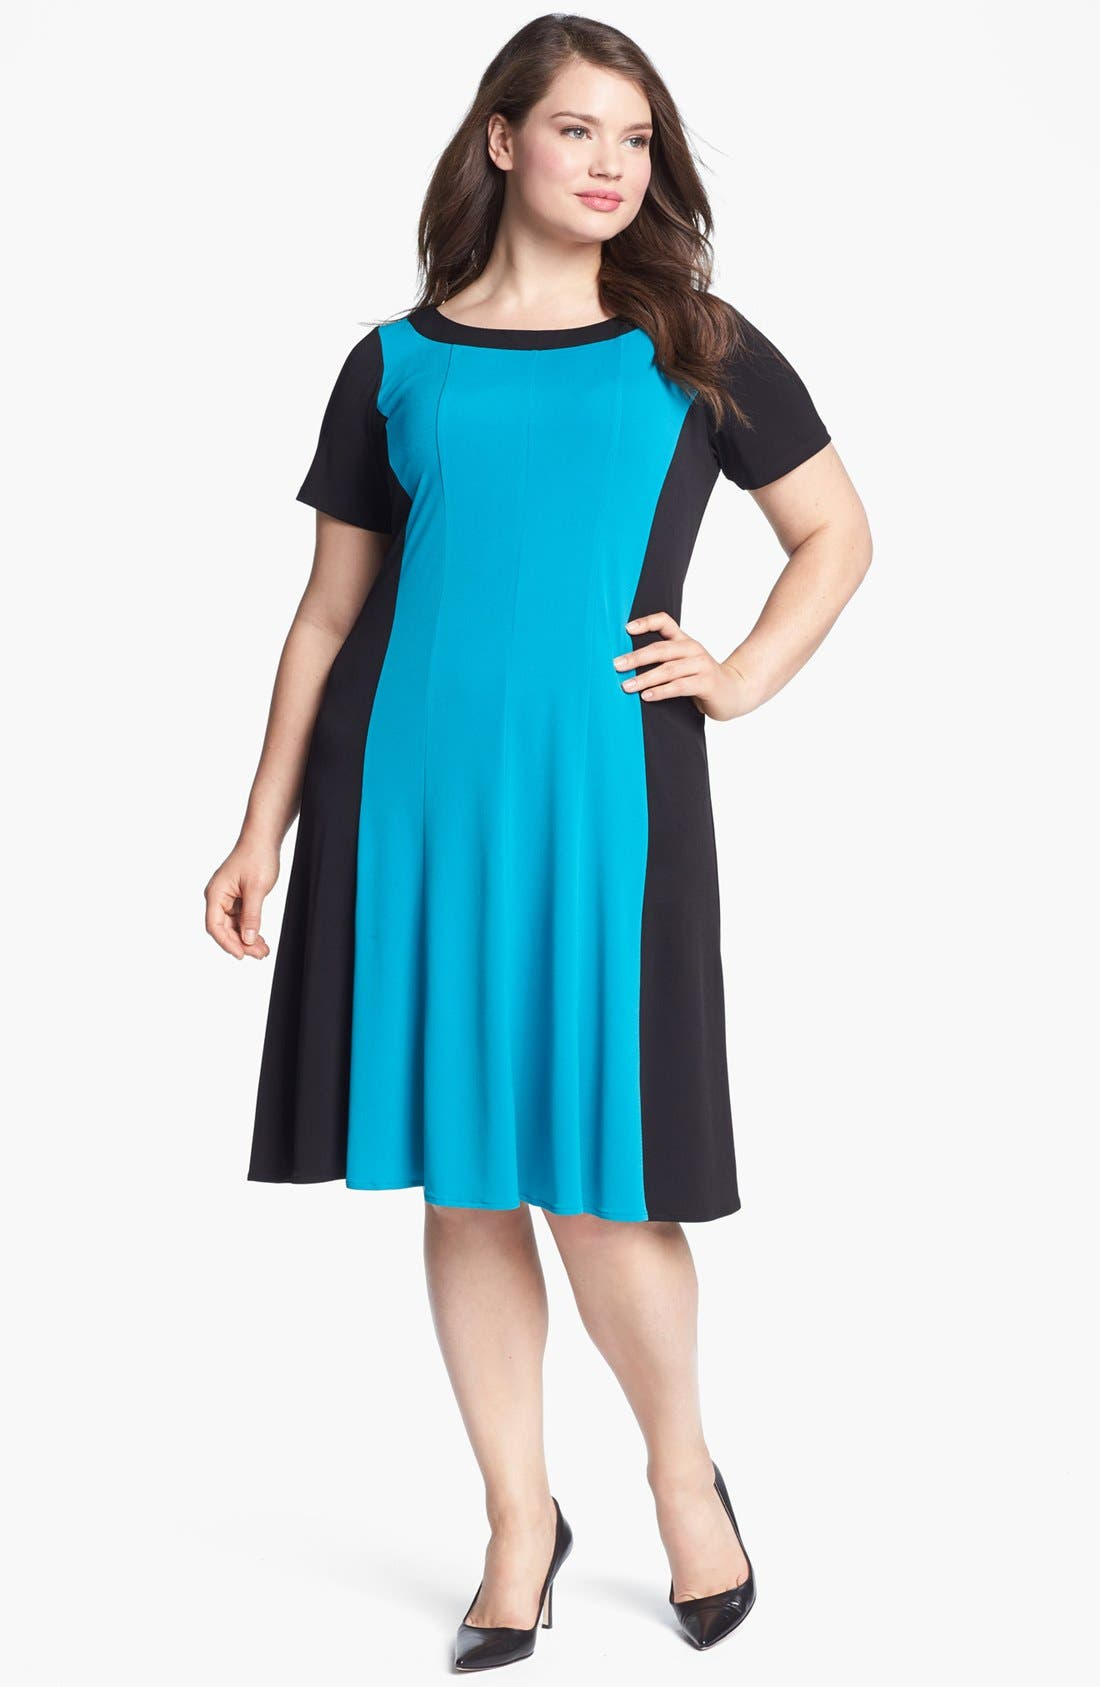 Alternate Image 1 Selected - London Times Colorblock Matte Jersey Dress (Plus Size)